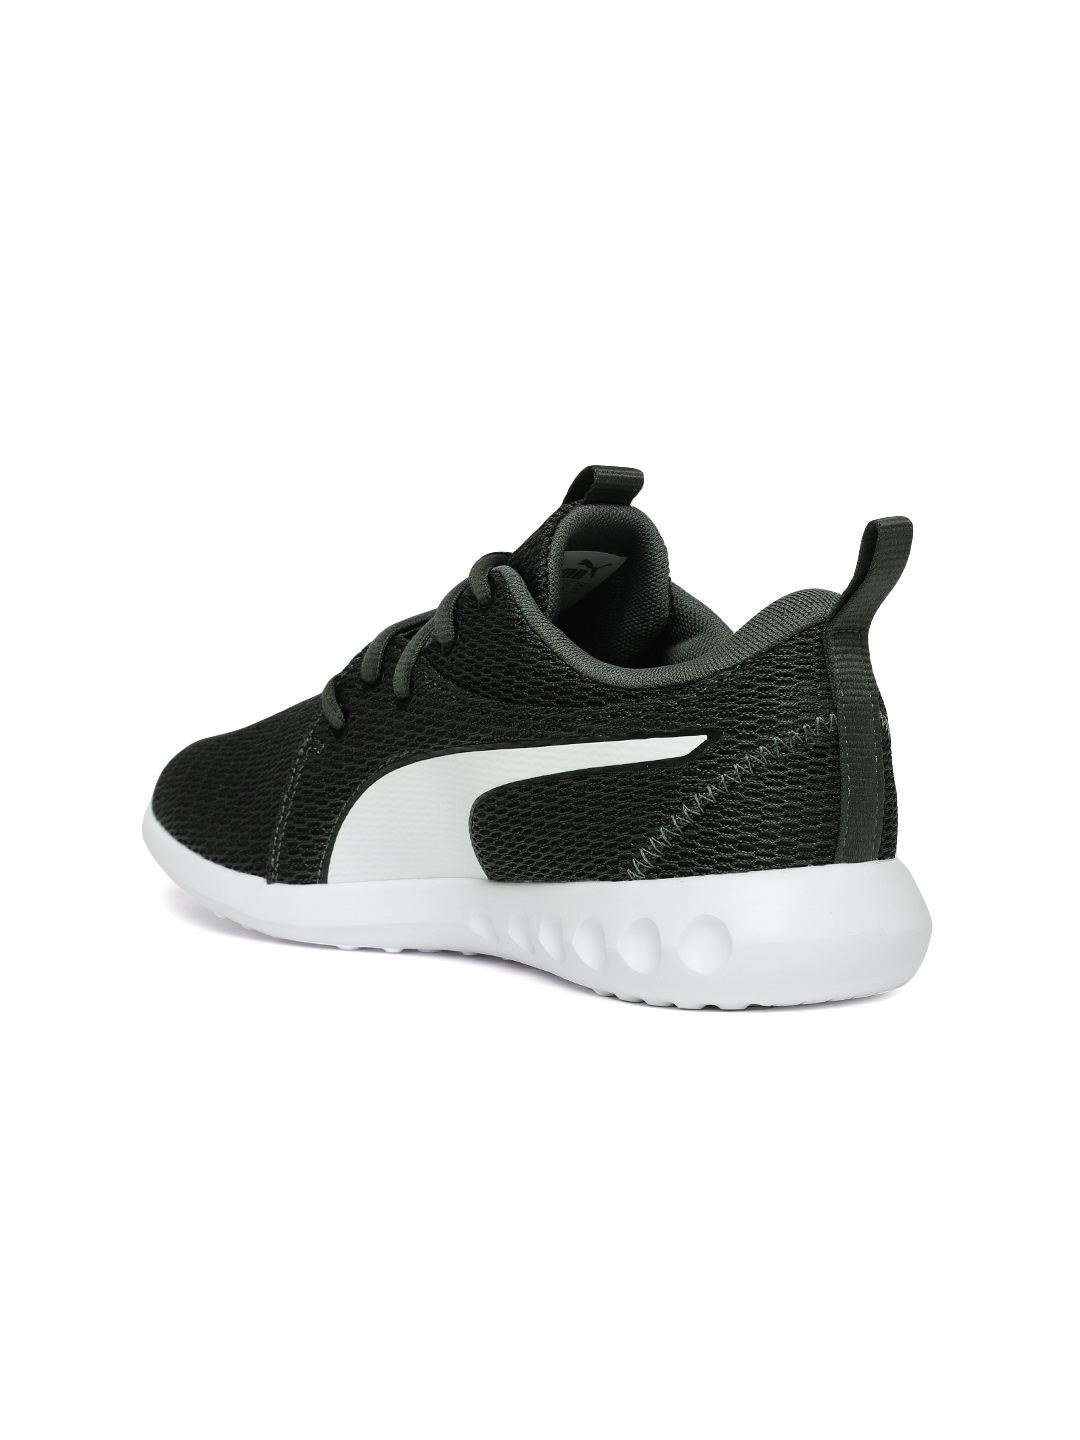 9989a638b135 Buy Puma Women Black Carson 2 New Core Training Shoes - Sports Shoes ...